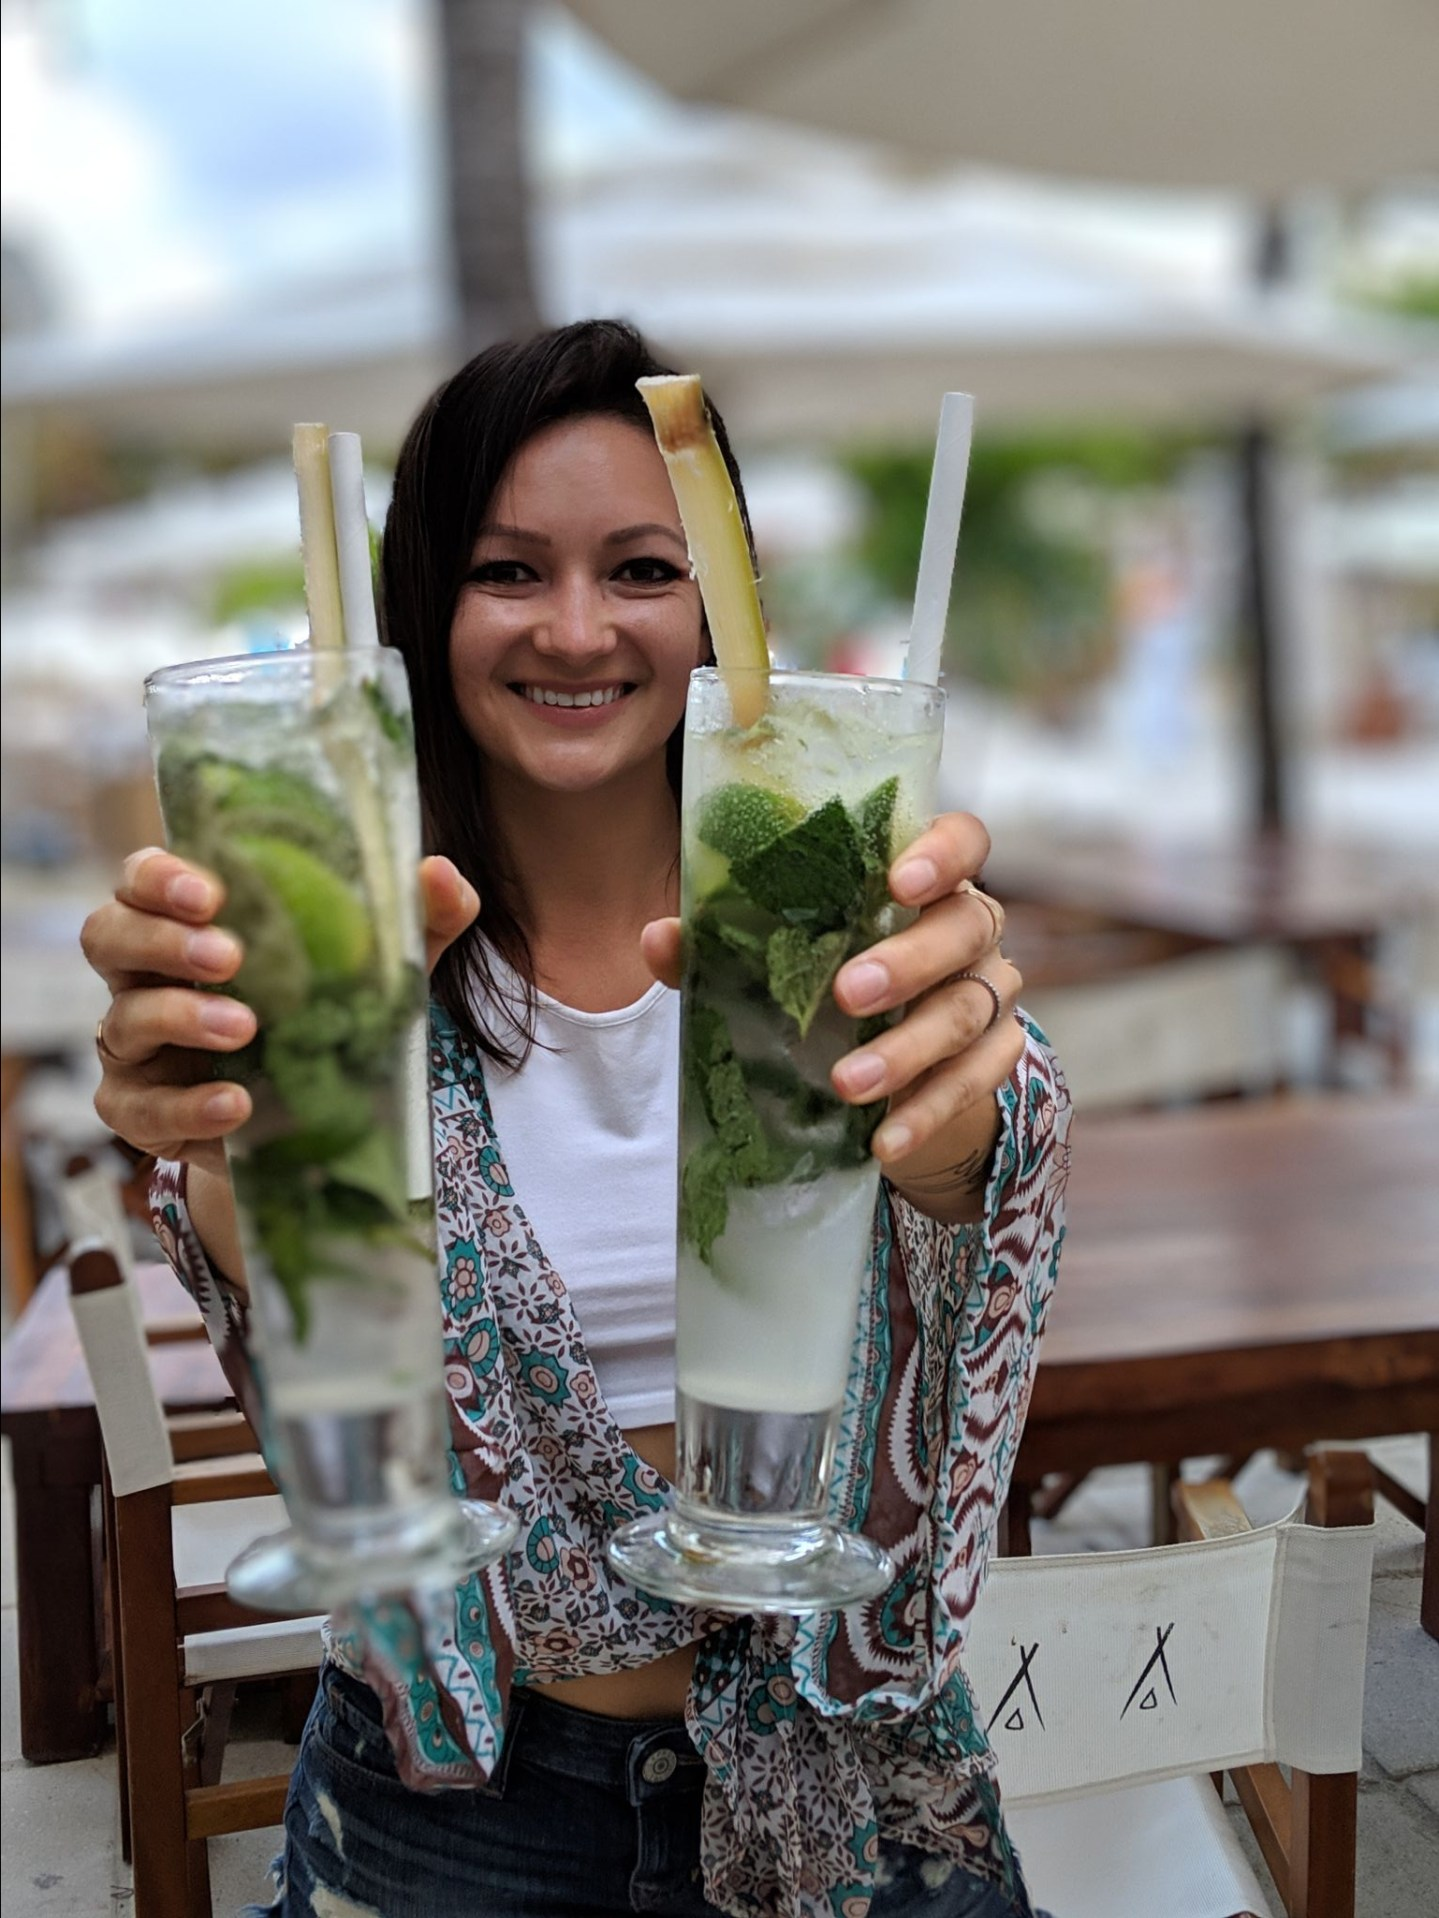 Nikki Beach mojitos in Miami Beach, FL. Cheers